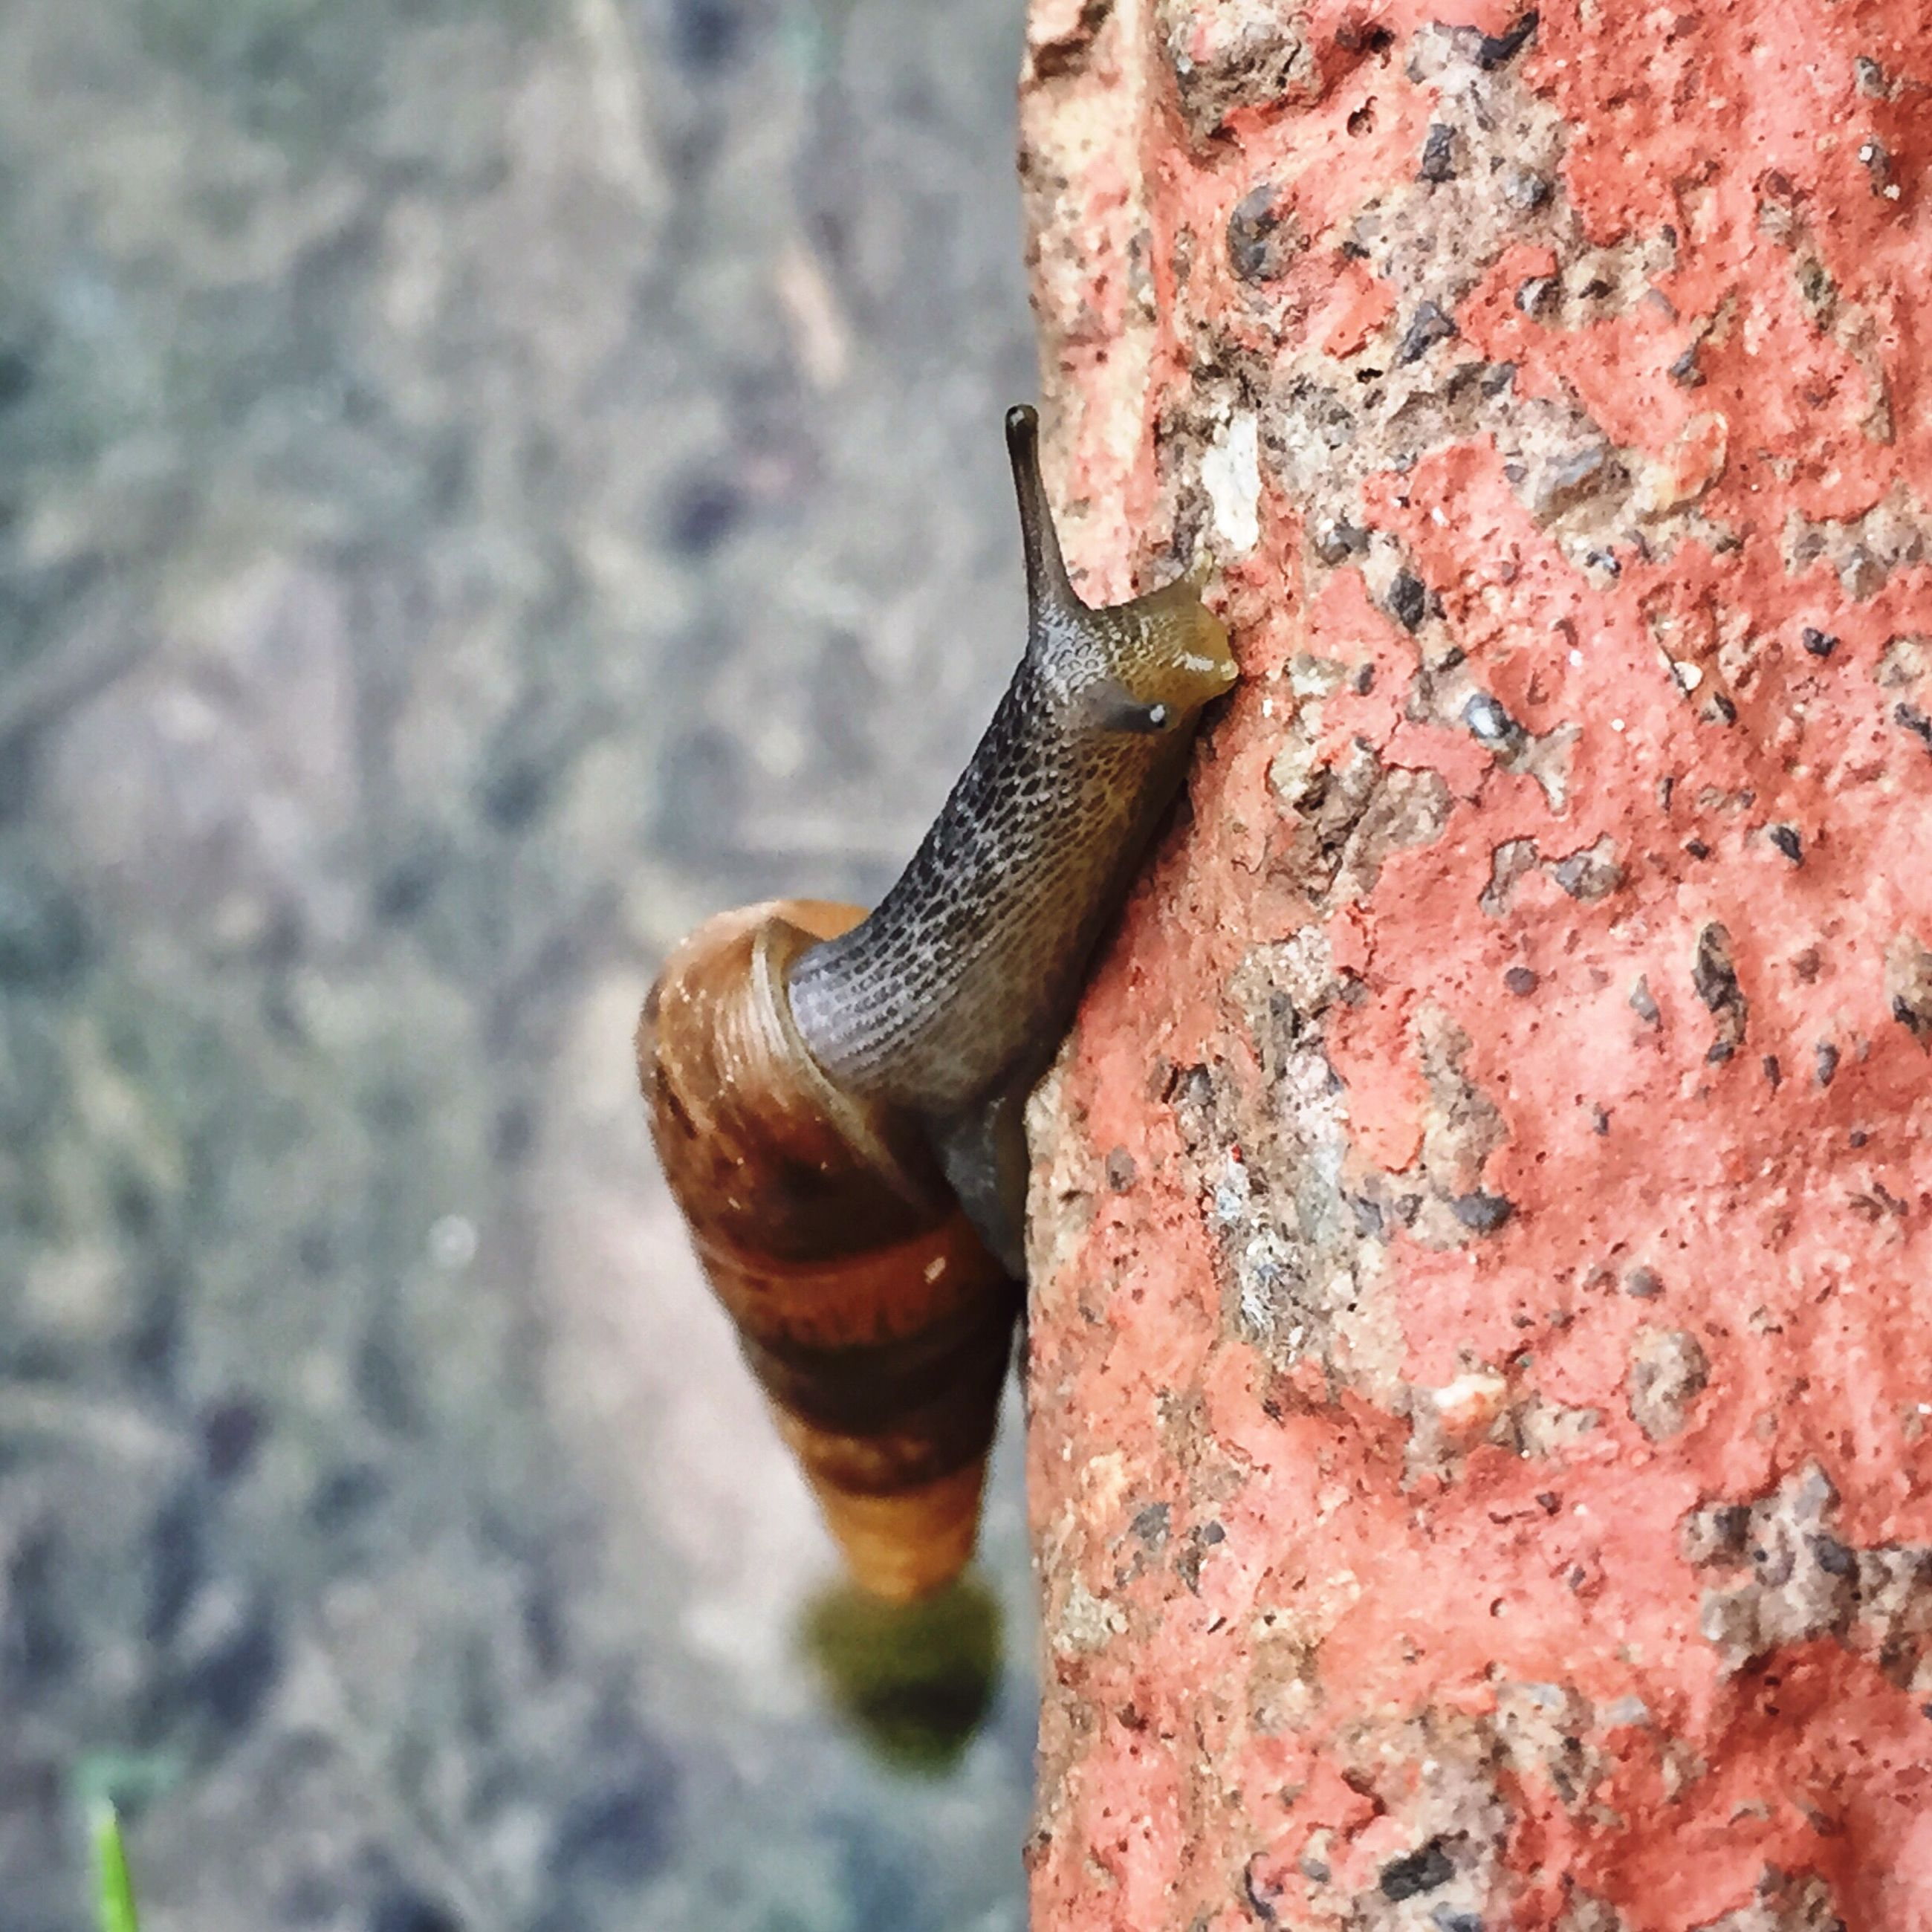 close-up, one animal, focus on foreground, animal themes, animals in the wild, rusty, wildlife, metal, textured, outdoors, snail, selective focus, day, no people, animal shell, nature, wall - building feature, weathered, old, metallic